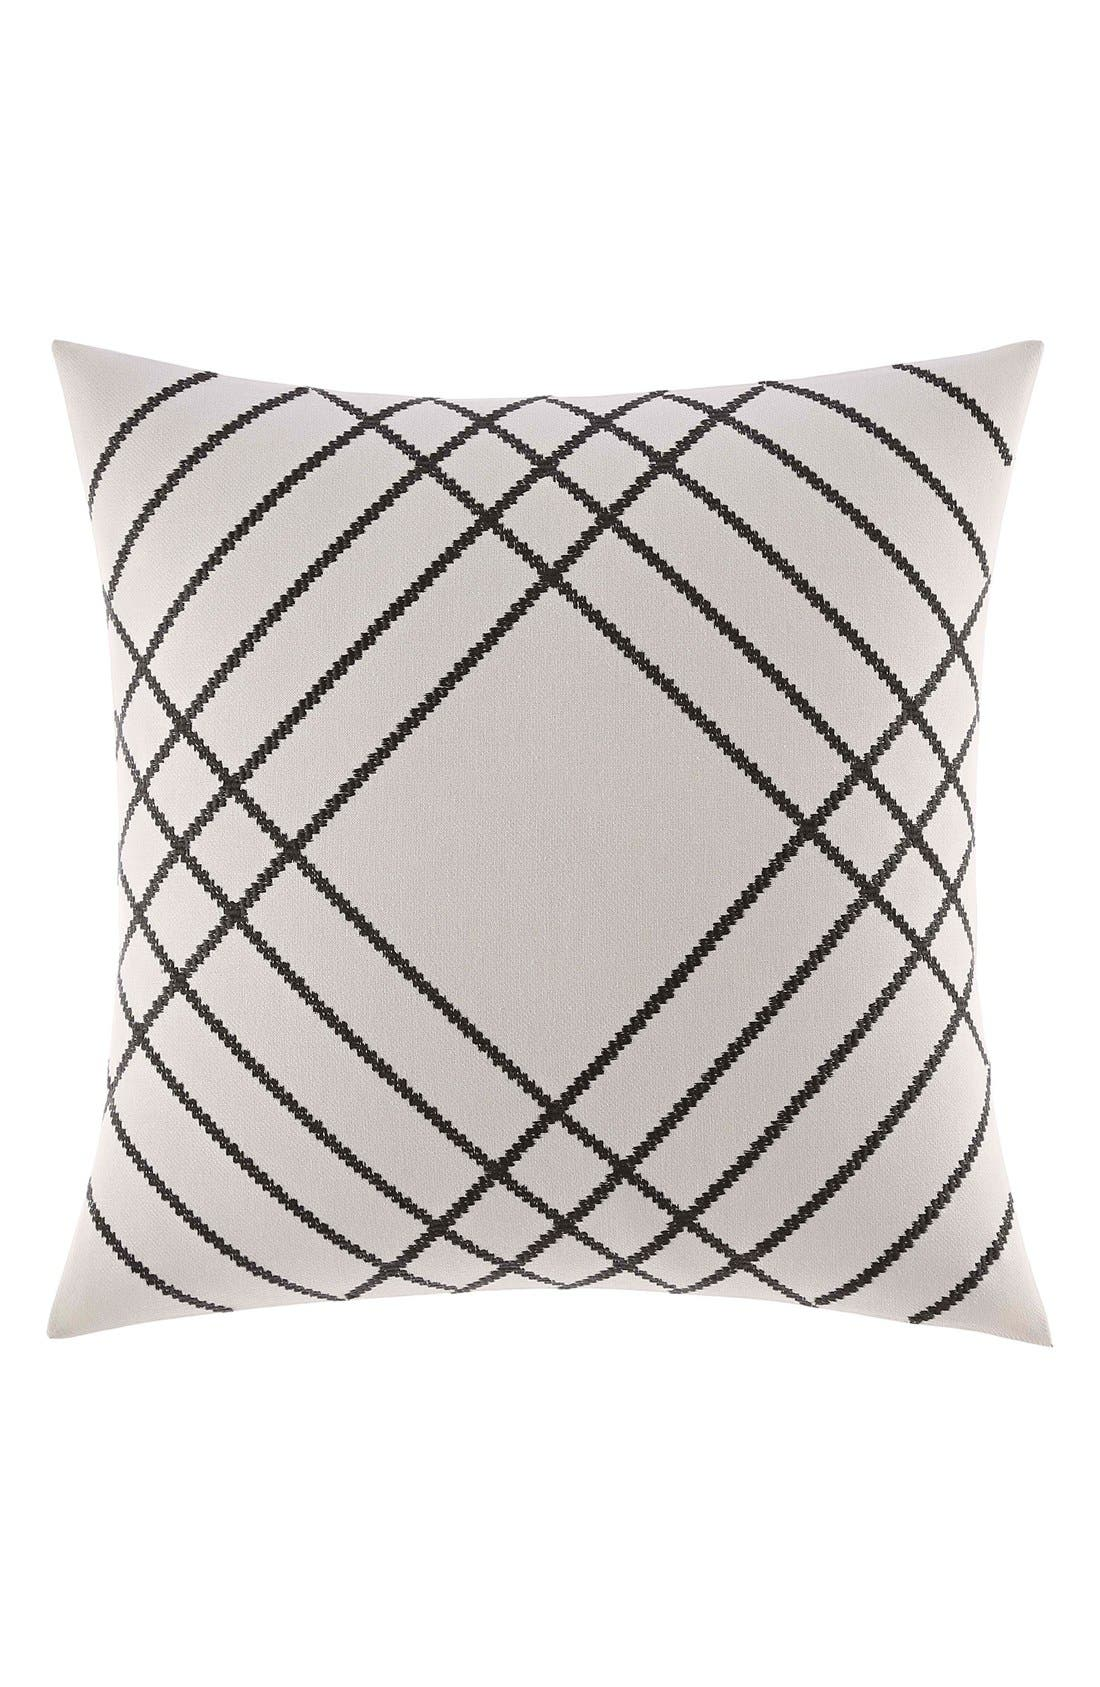 'Chatfield' Pillow,                         Main,                         color, Taupe/ Grey